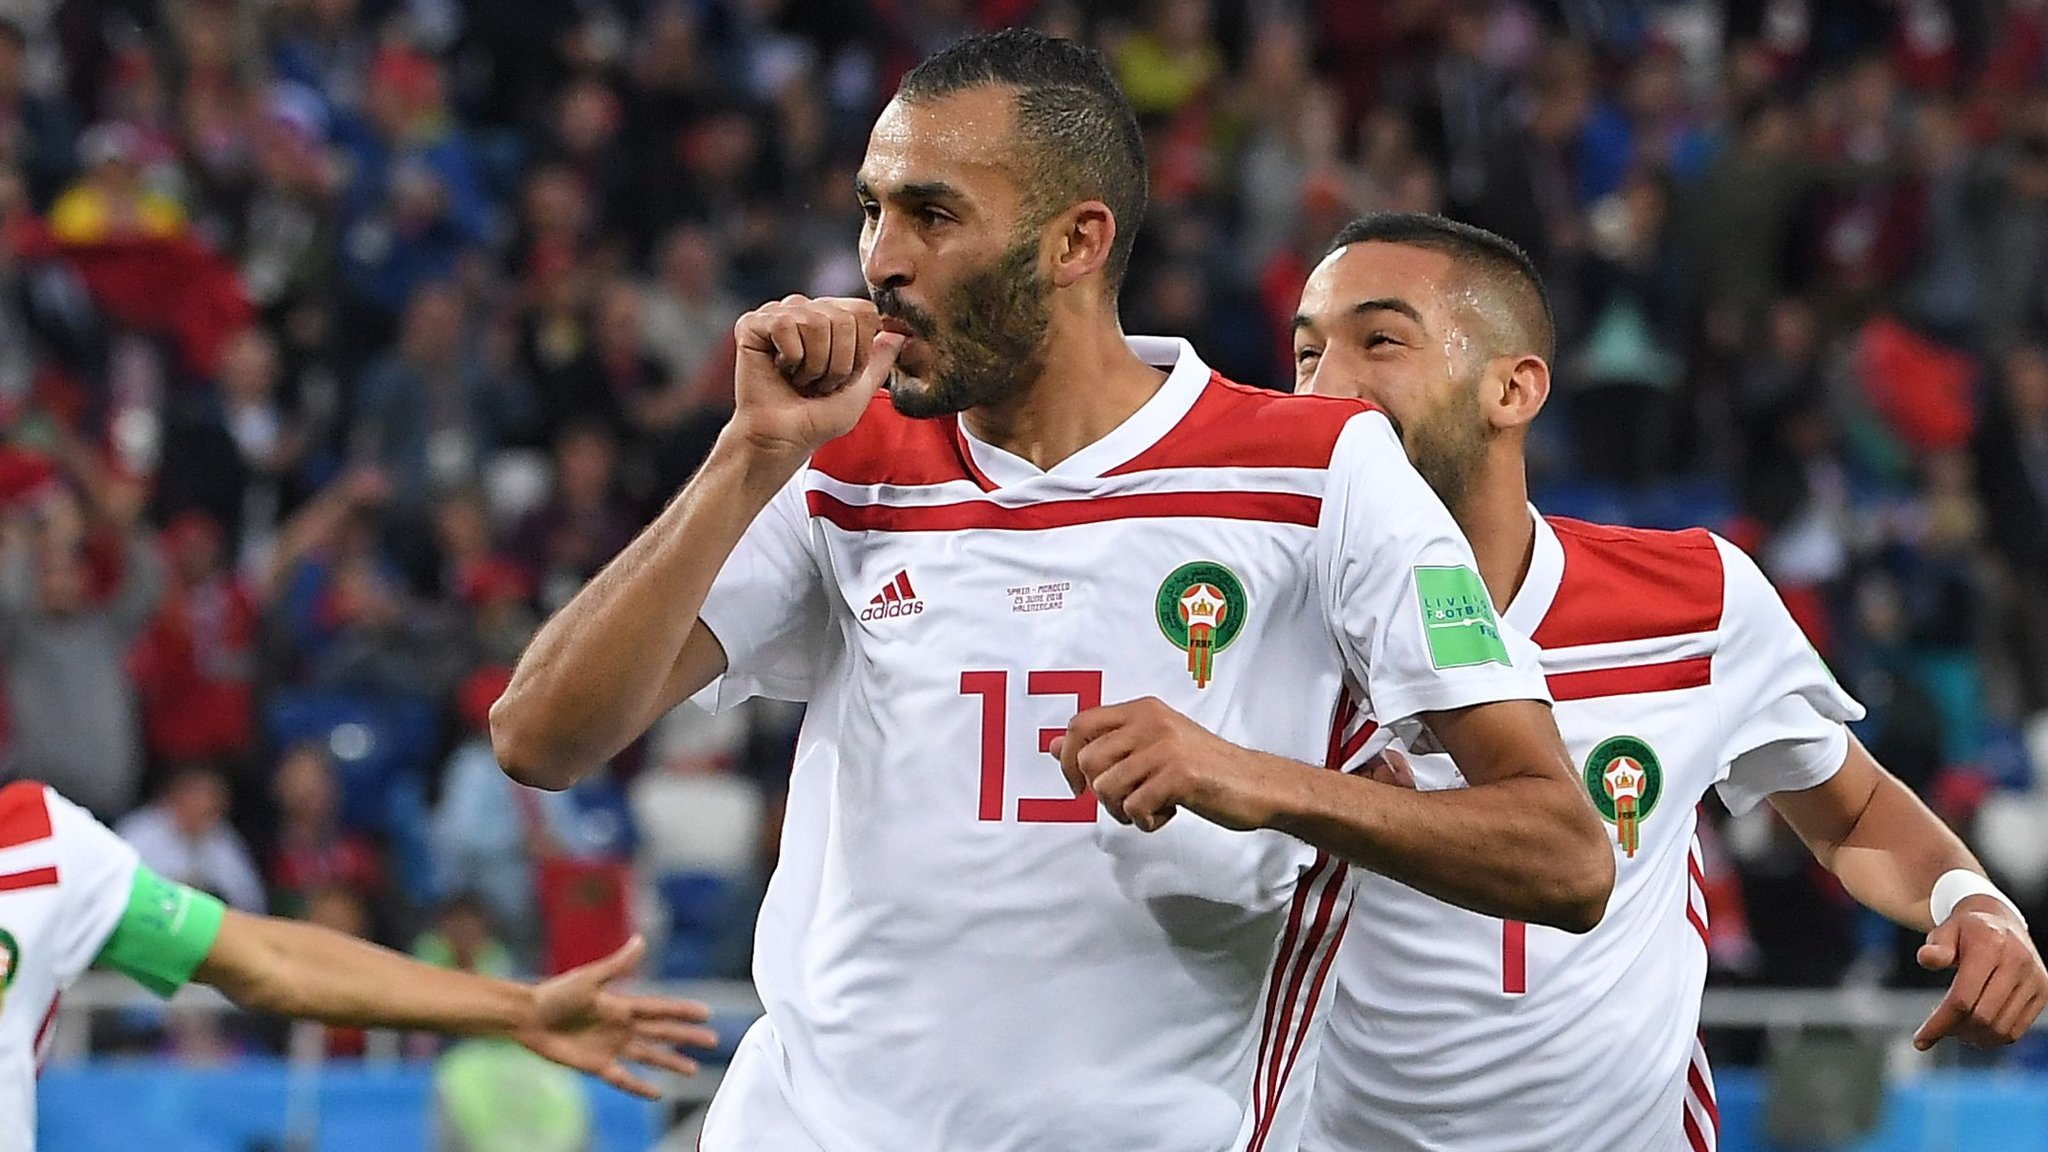 World Cup 2018: Khalid Boutaib gives Morocco shock lead over Spain